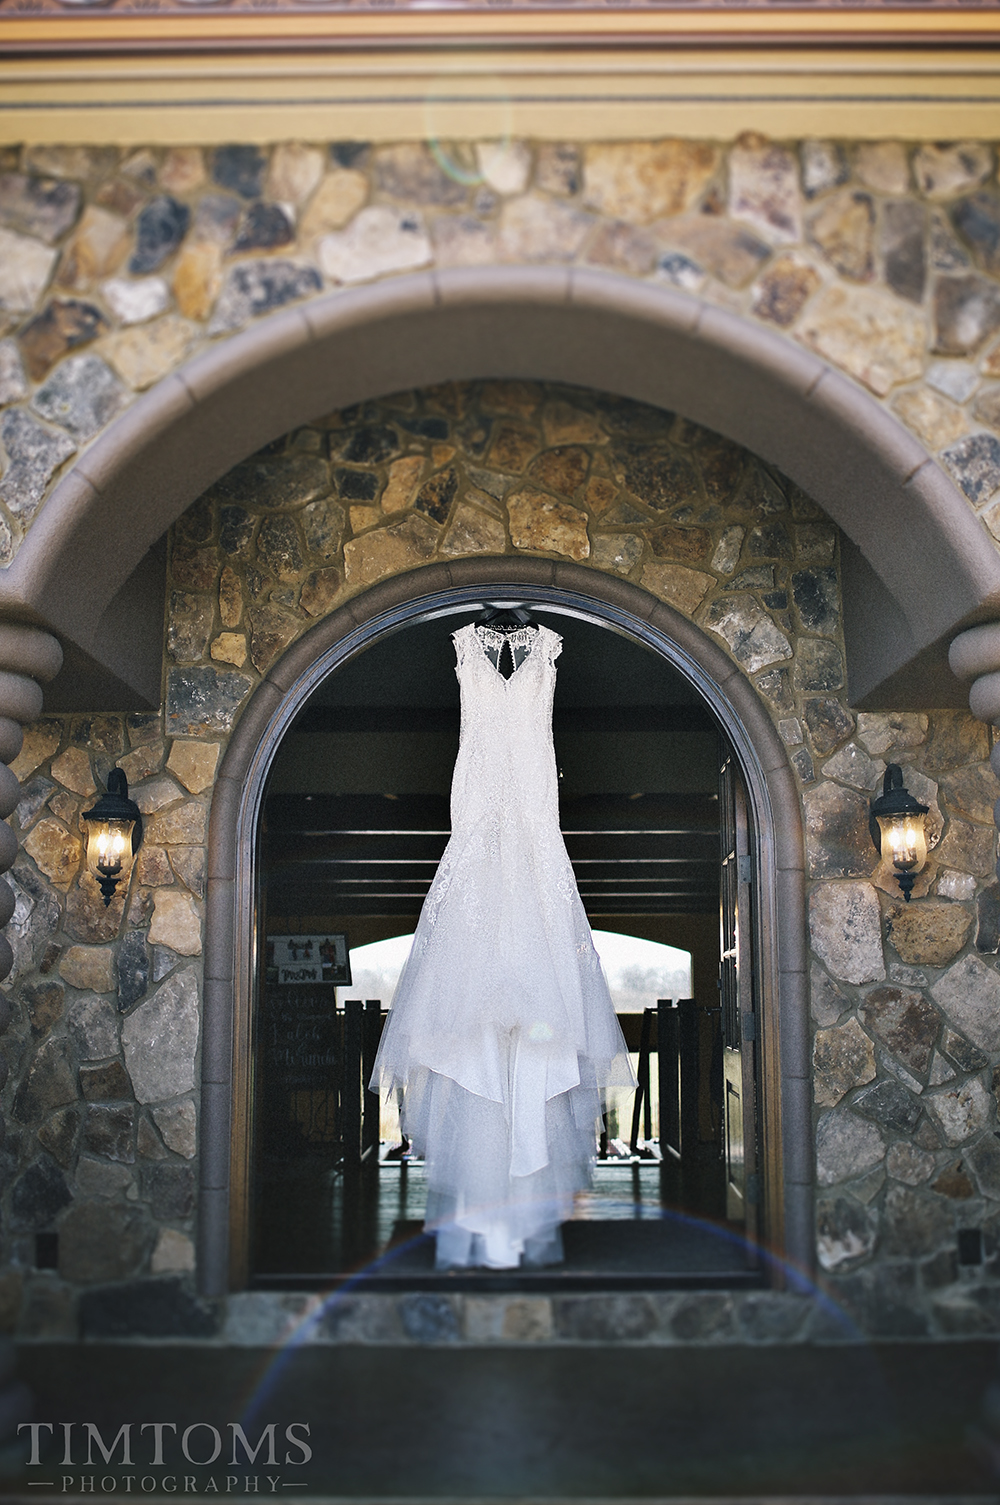 White Wedding Dress Hanging in Door